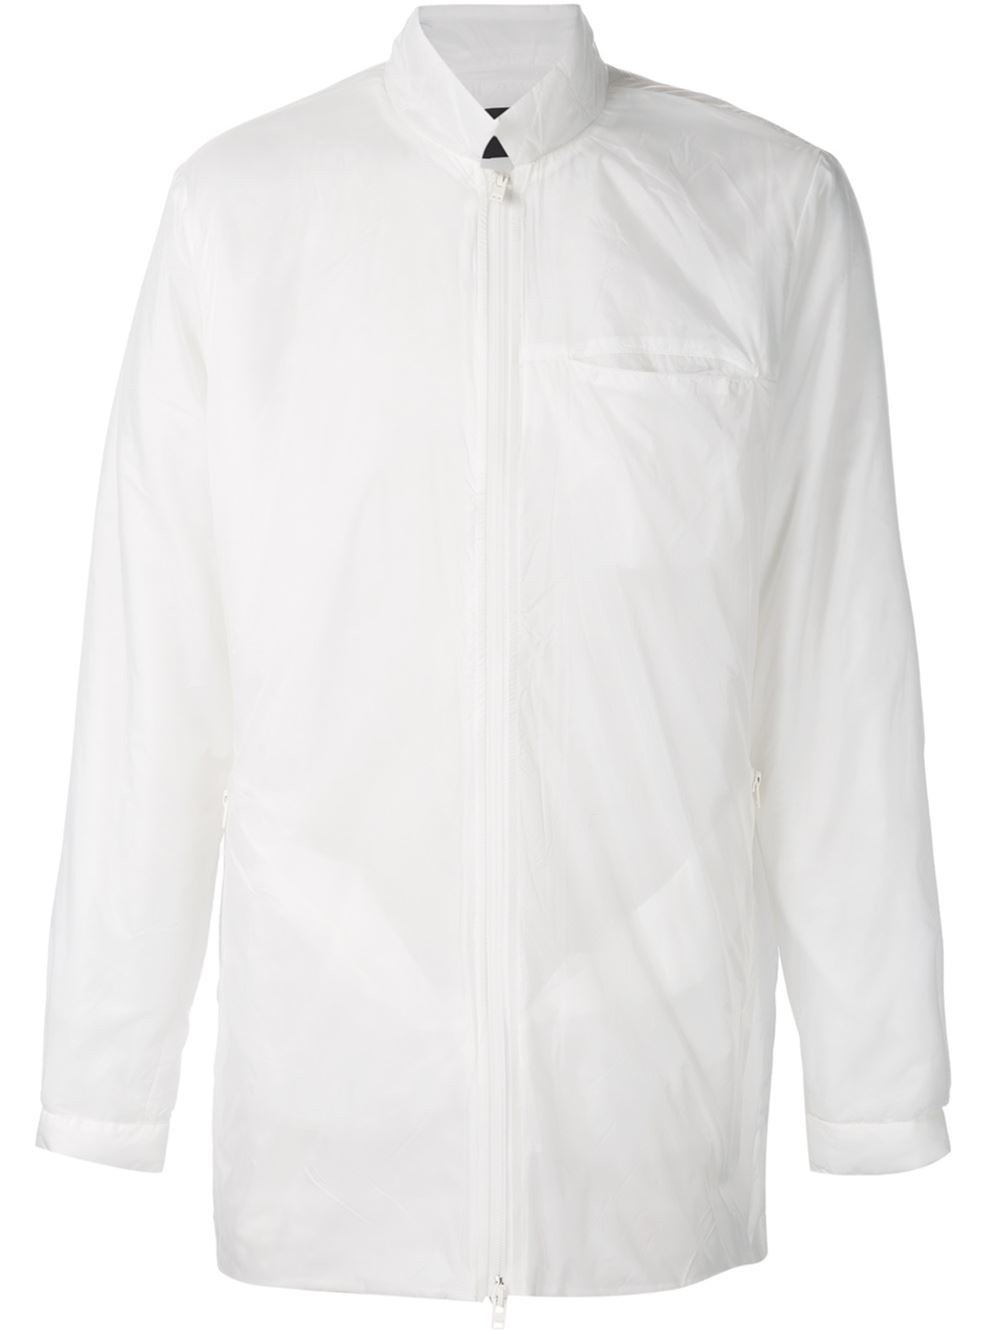 Lyst Stampd Zipped Shirt Jacket In White For Men